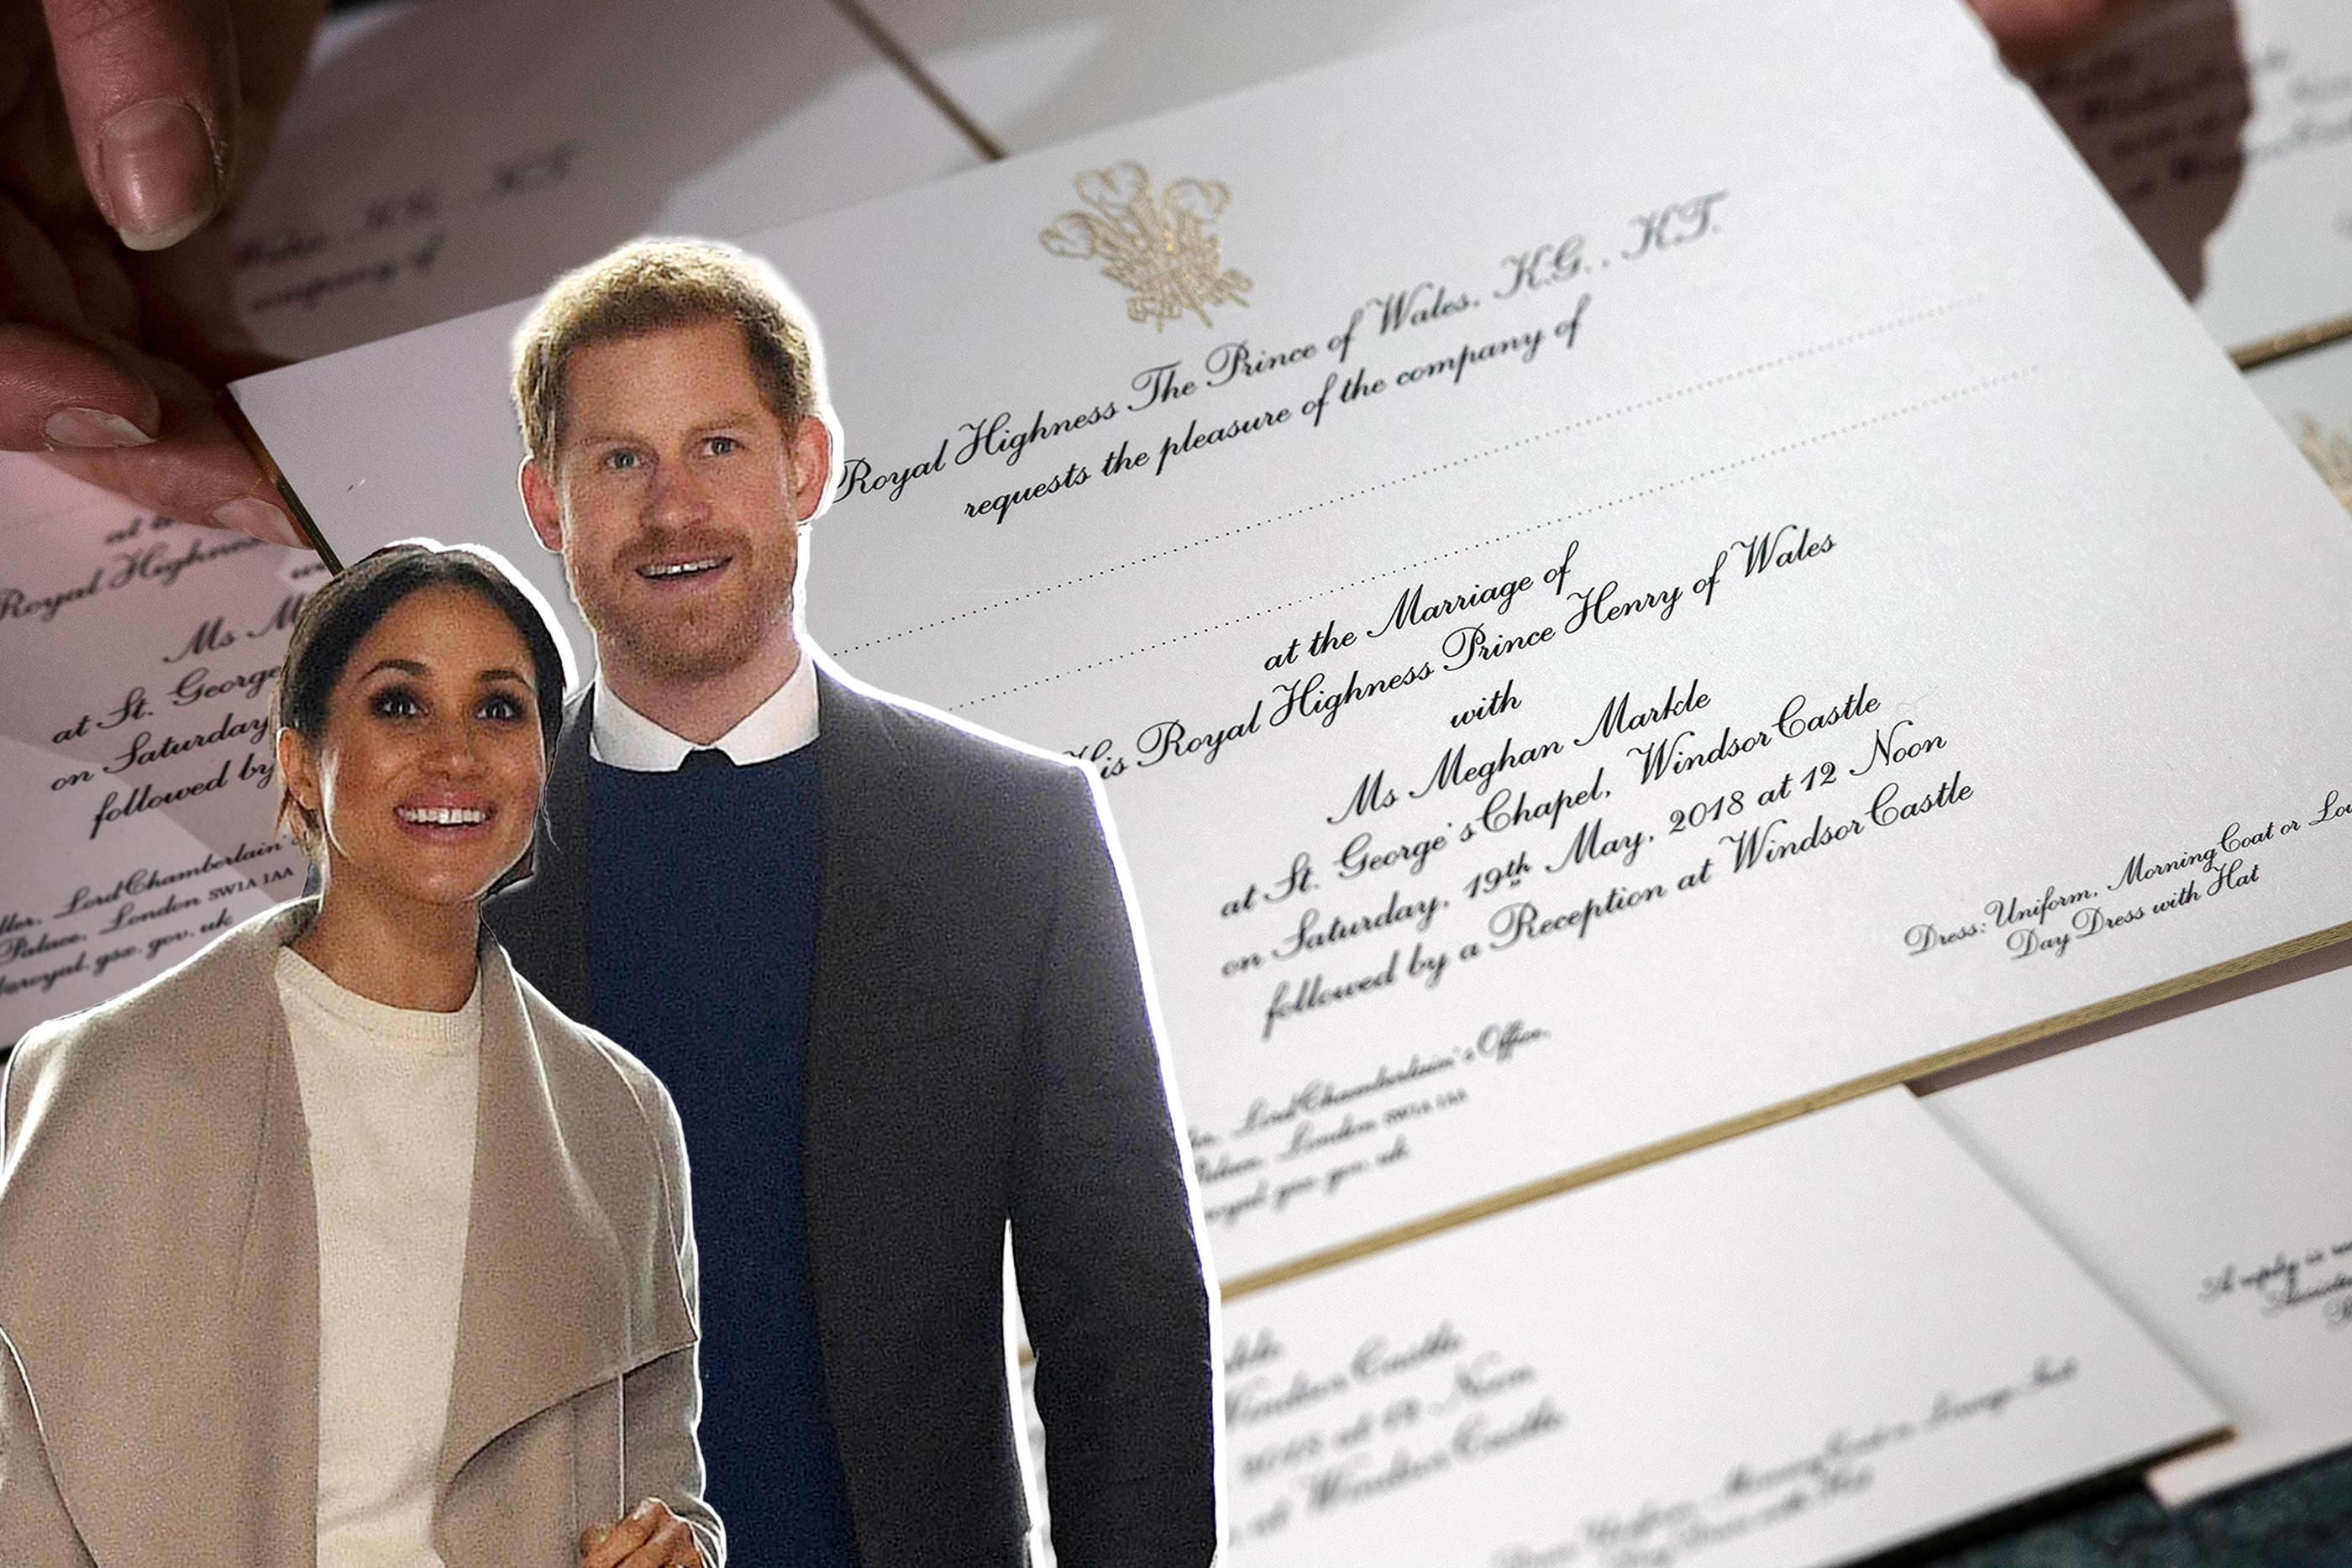 How Much Do Wedding Invites Cost: Here's How Much Prince Harry And Meghan Markle's Wedding